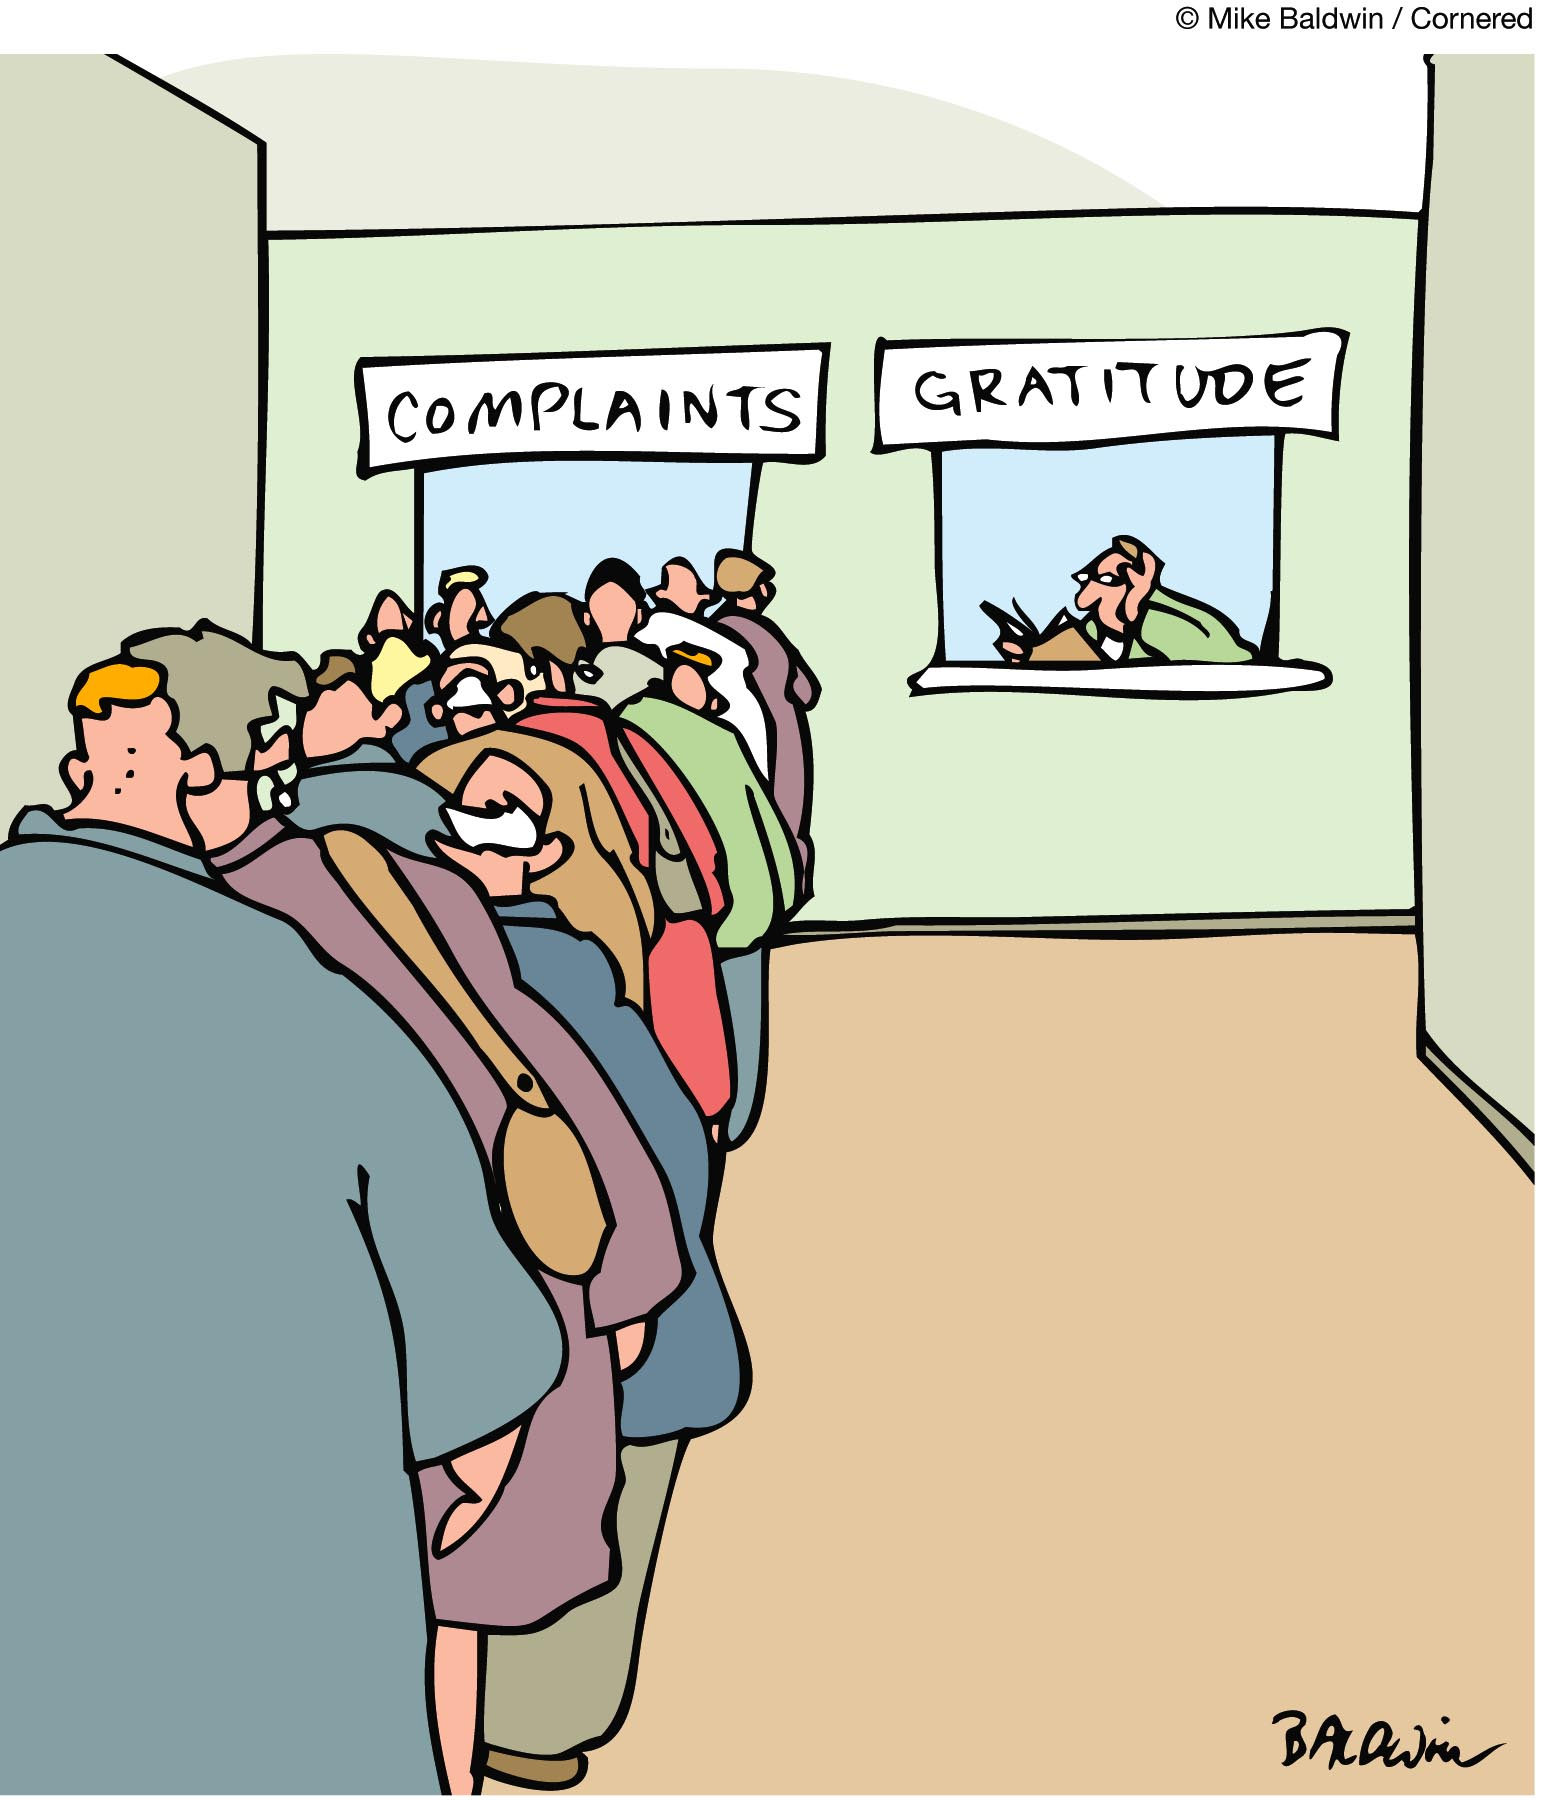 Despite all my shortcomings, I have much to be grateful for.